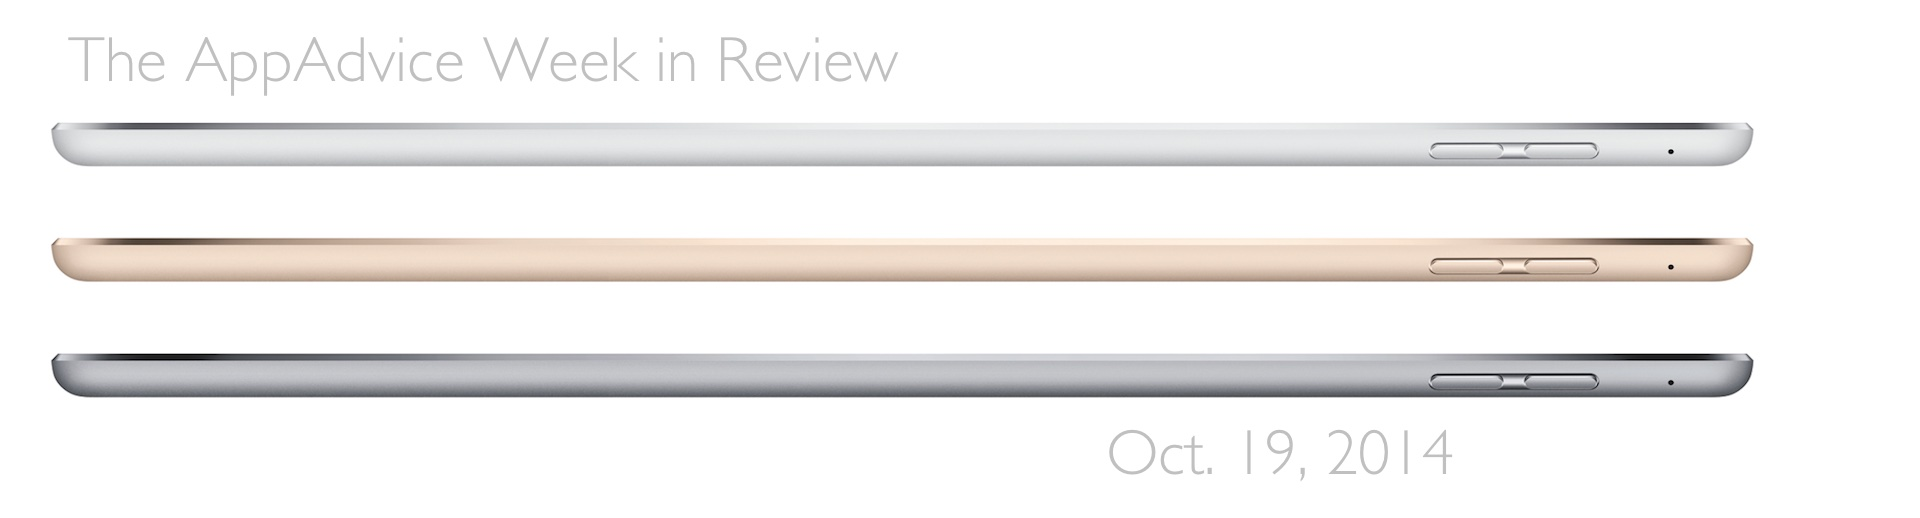 The AppAdvice week in review: A look back at Apple's iPad event